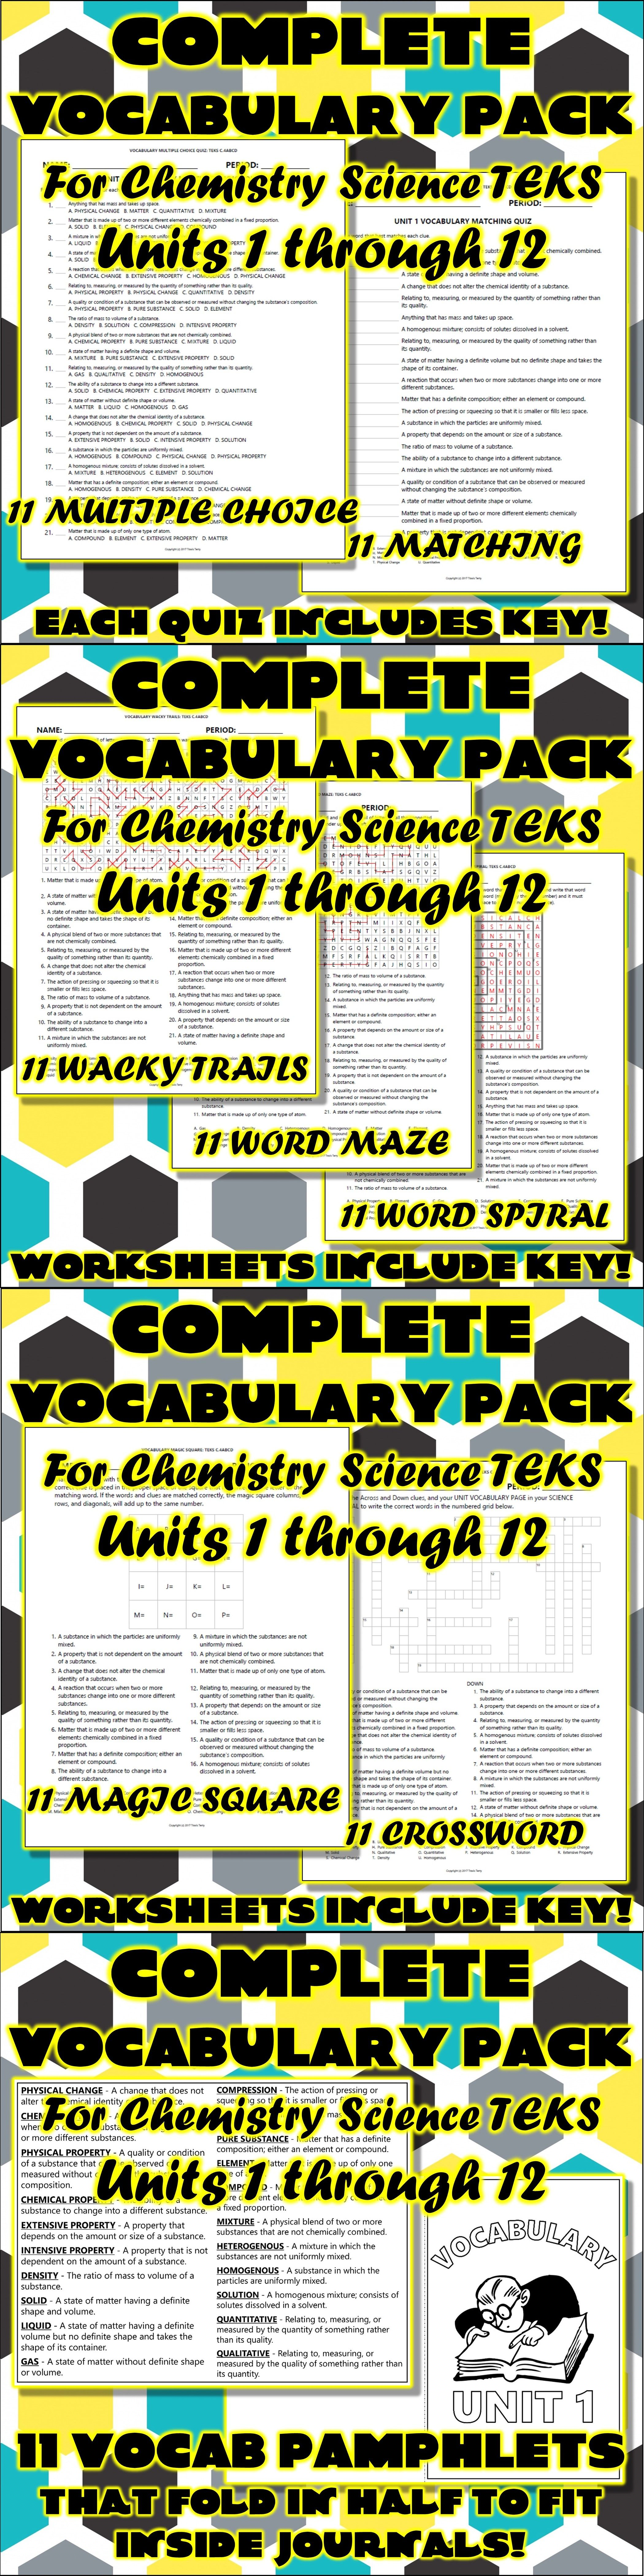 Pin By Travis Terry On Science For Secondary Grades Biology Chemistry Physics And More Science Teks Science Teaching Resources Science